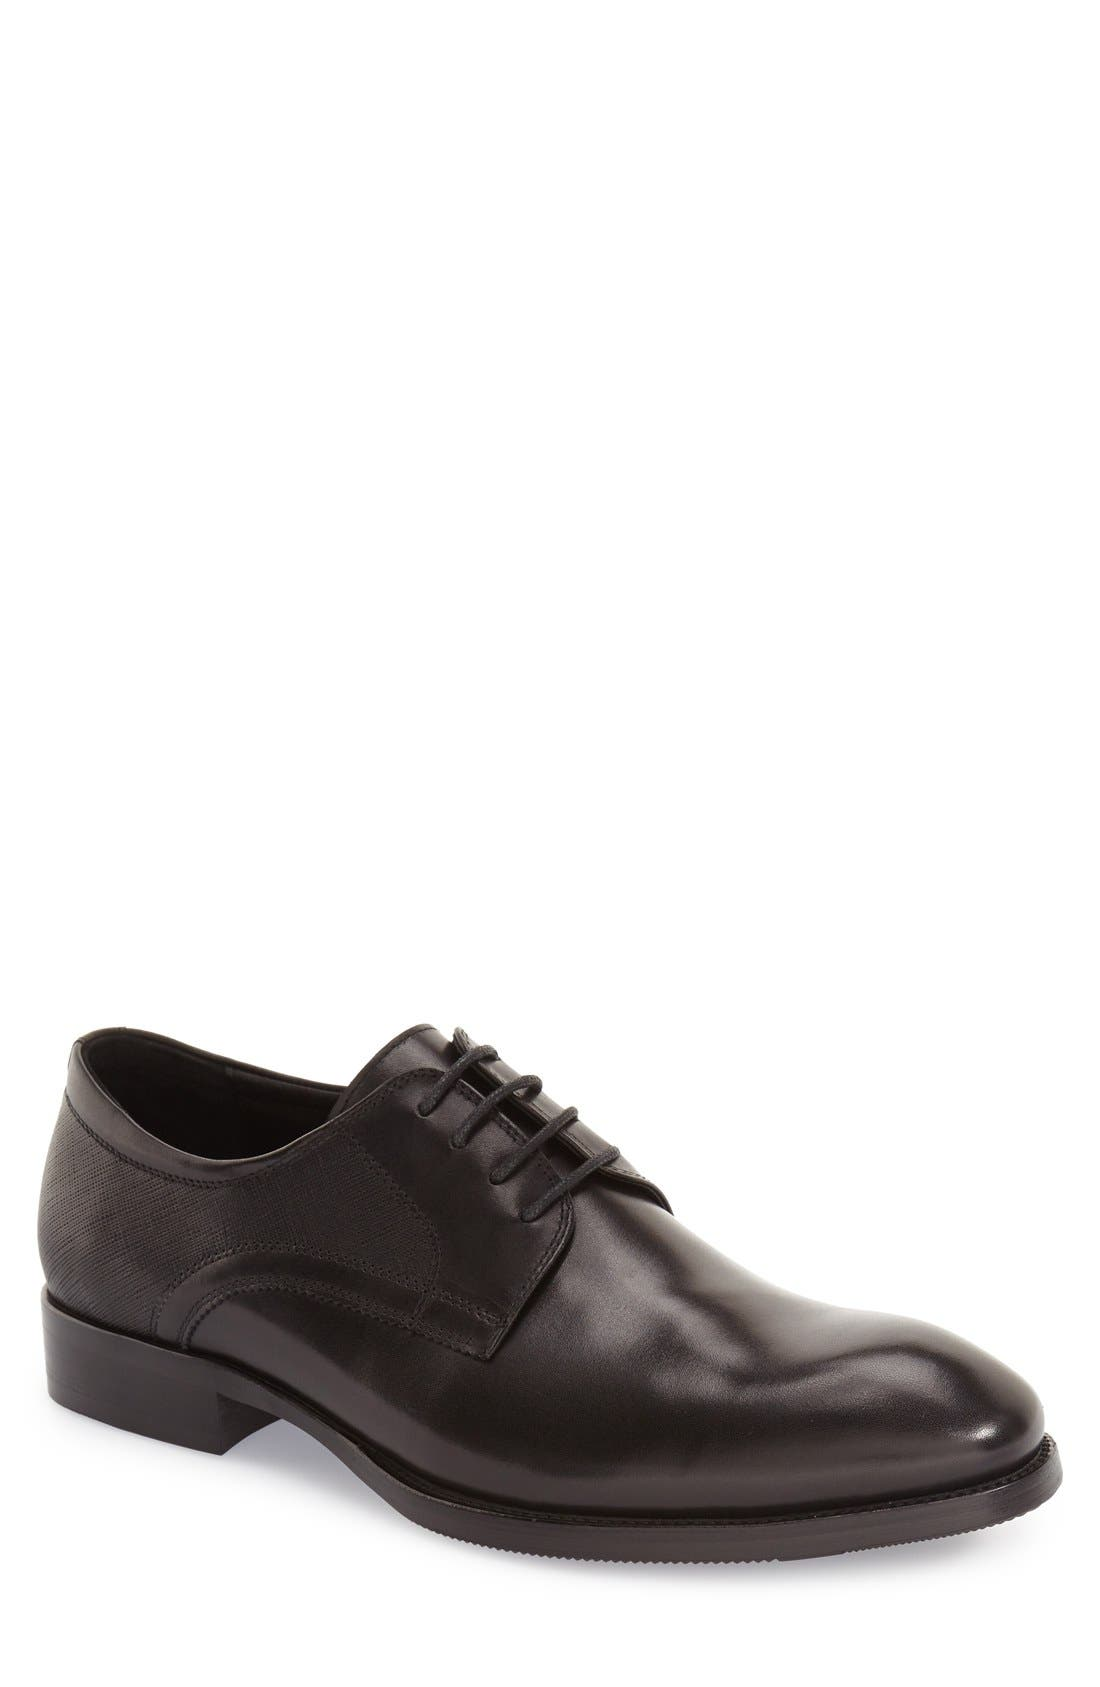 'Bruckner' Plain Toe Derby,                             Main thumbnail 1, color,                             001